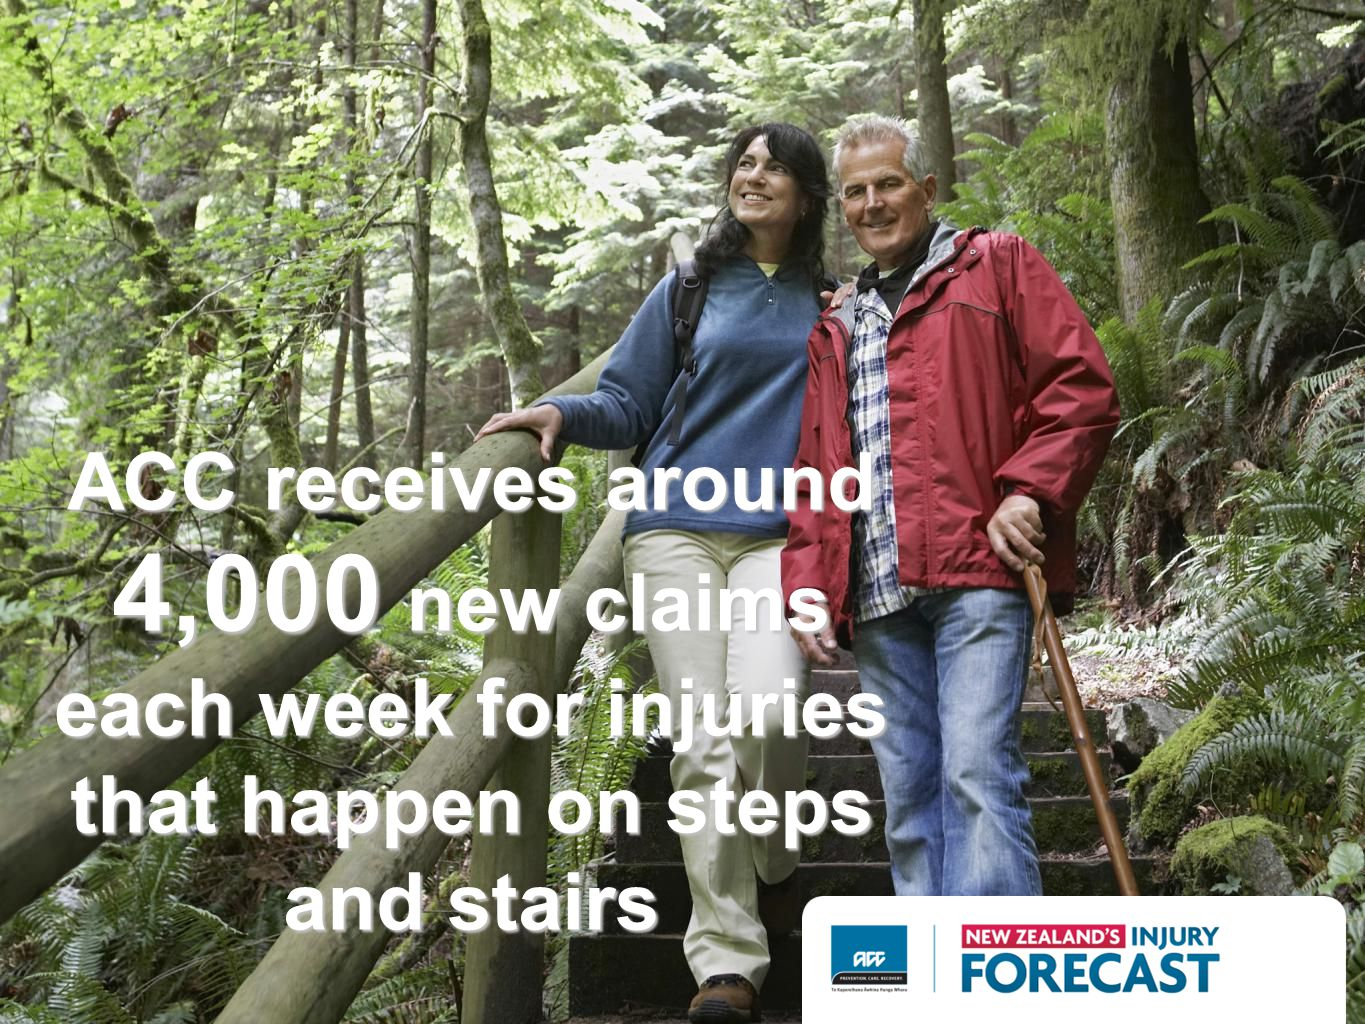 ACC receives around 4,000 new claims each week for injuries that happen on steps and stairs